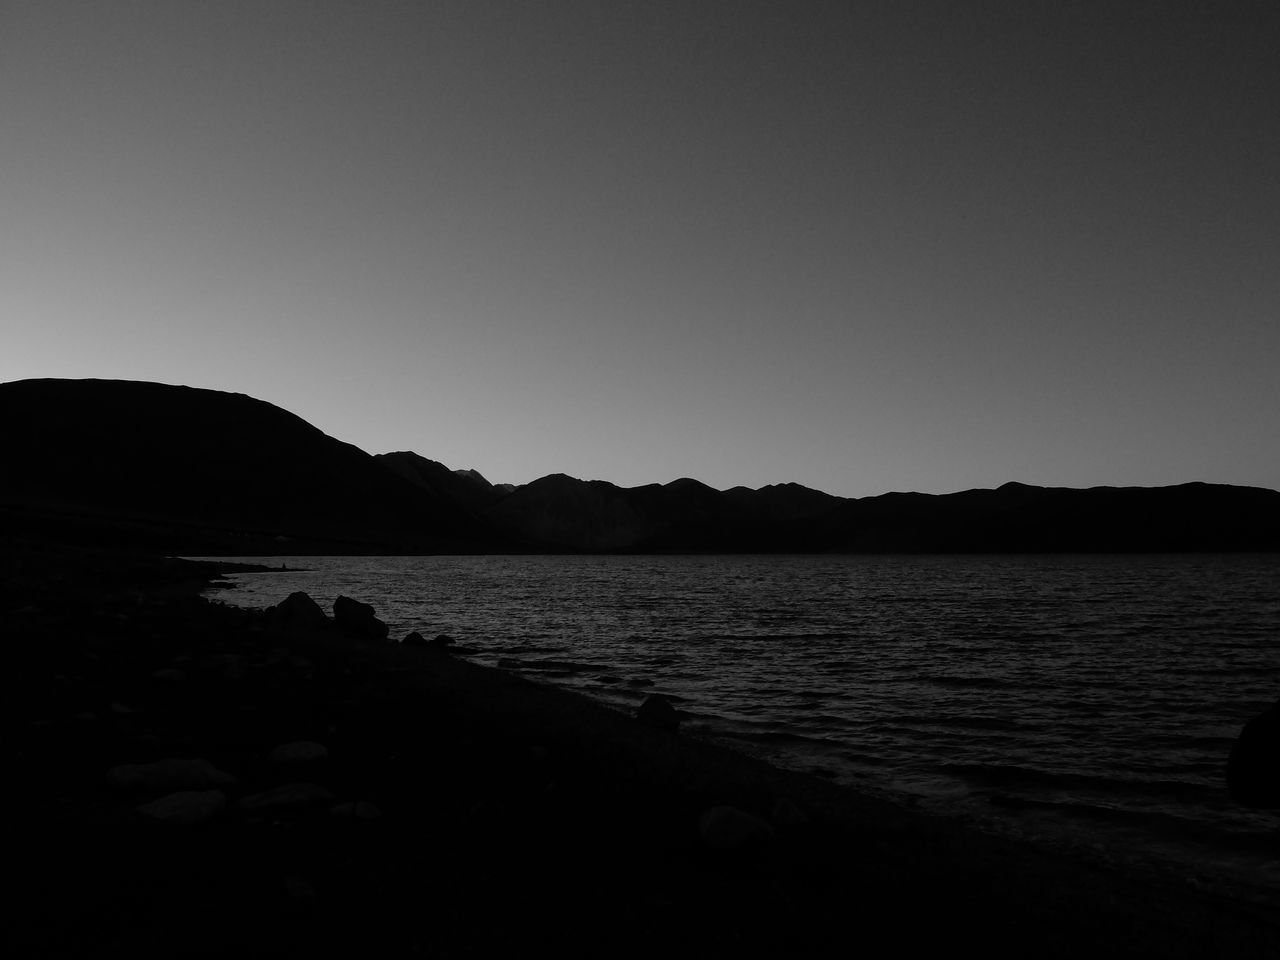 Beach Beauty In Nature Black And White Day Jammu And Kashmir Landscape Leh Ladakh Mountain Nature No People Outdoors Pangong Lake Pangong Tso Sand Scenics Sea Silhouette Sky Tranquil Scene Tranquility Water